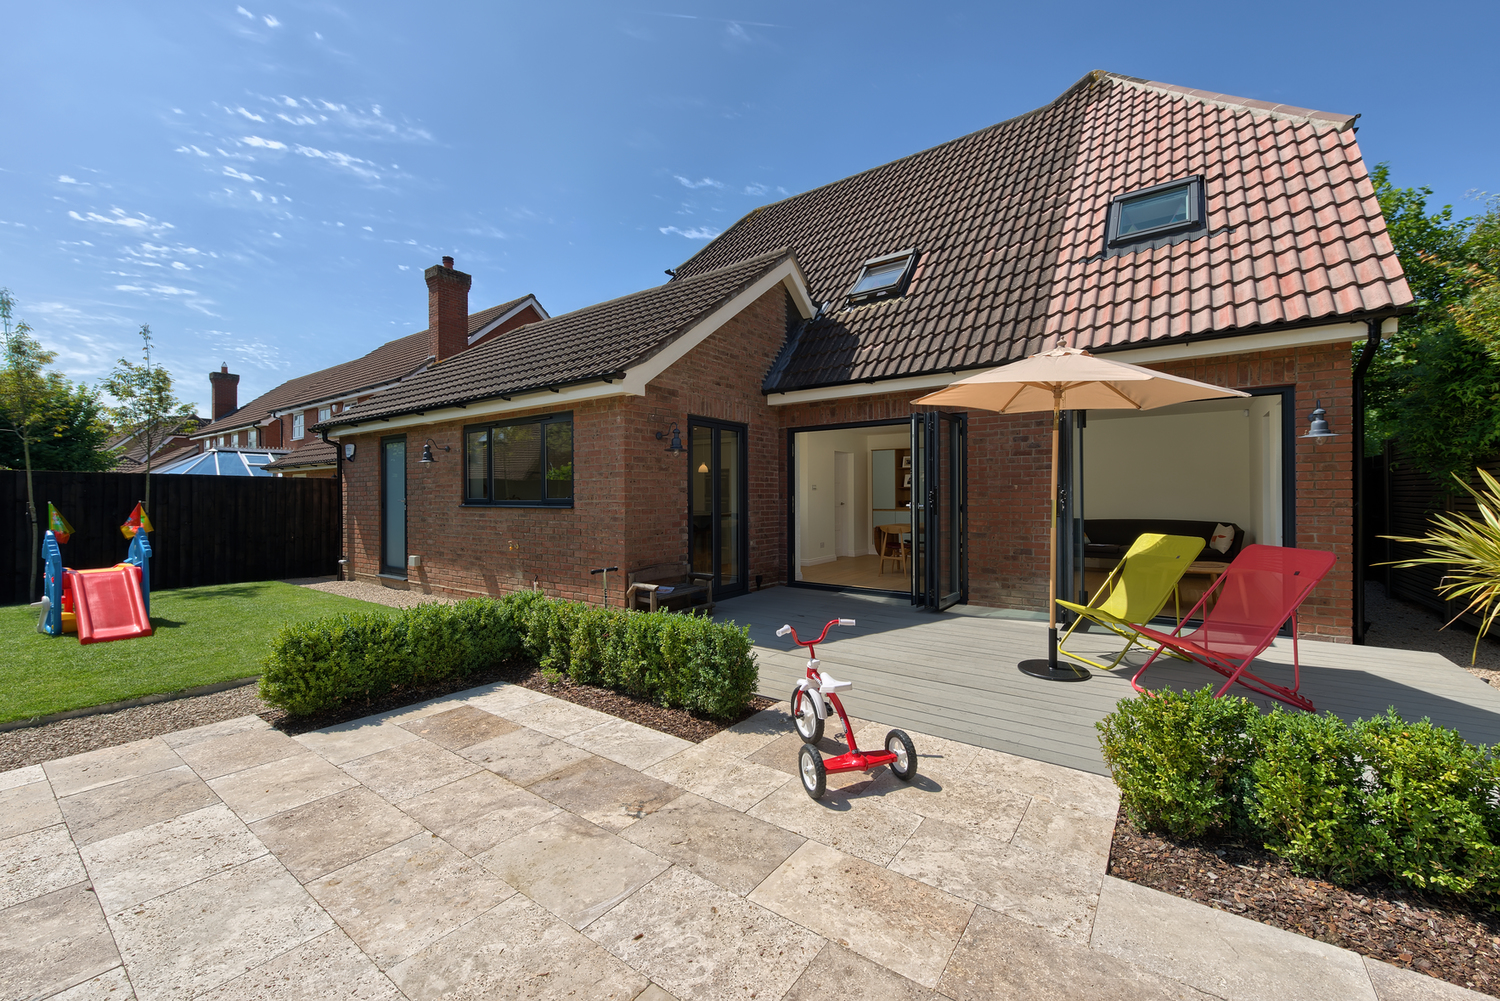 Garden pavement of a Scandinavian house extension by Harvey Norman Architects Bishop's Stortford